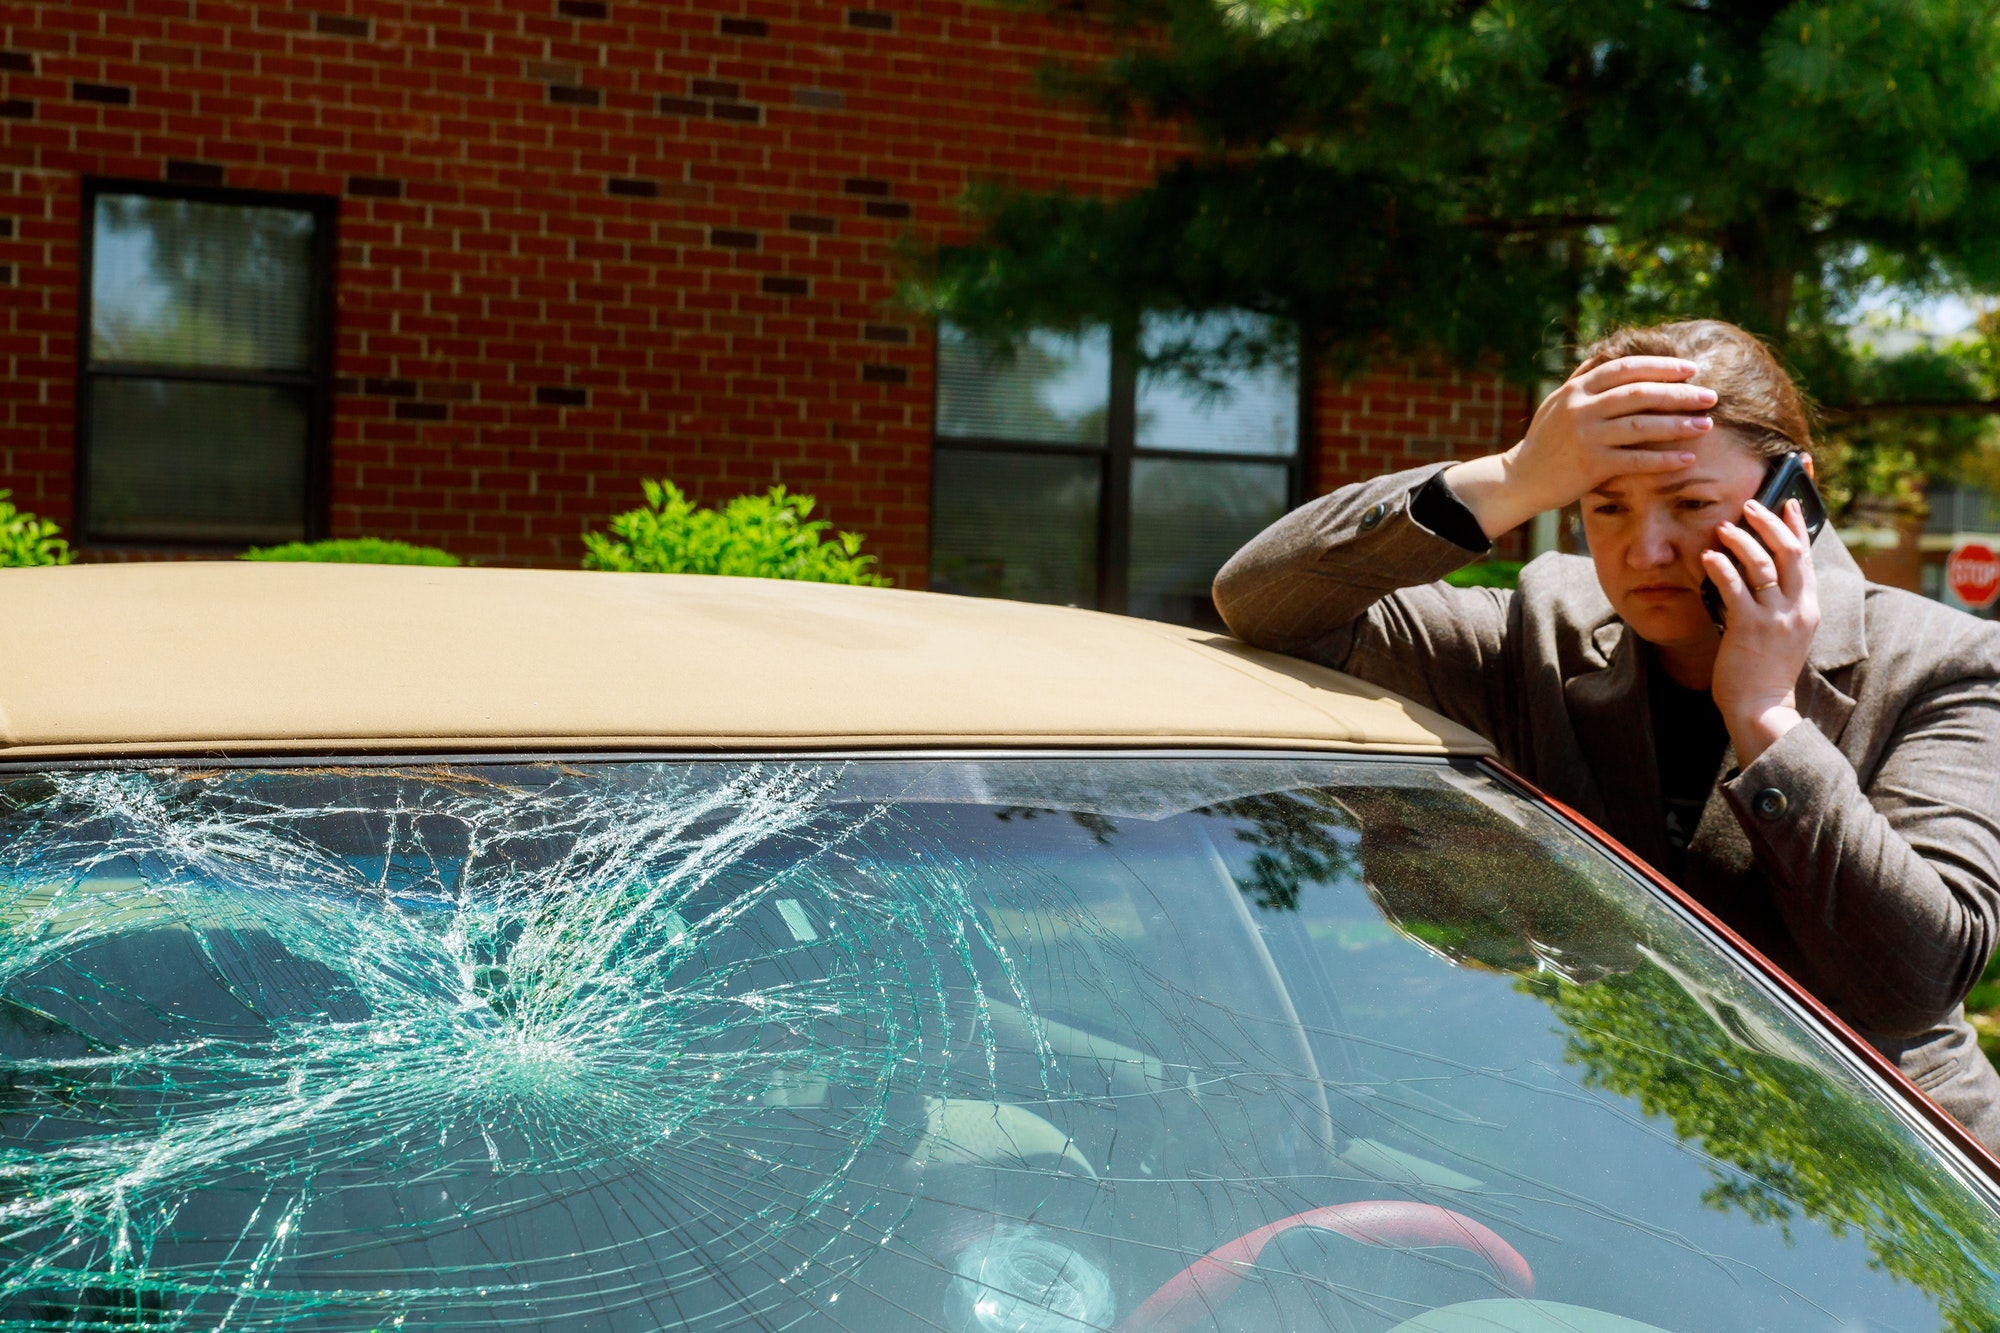 Woman making a phone call next to broken windshield after a car accident